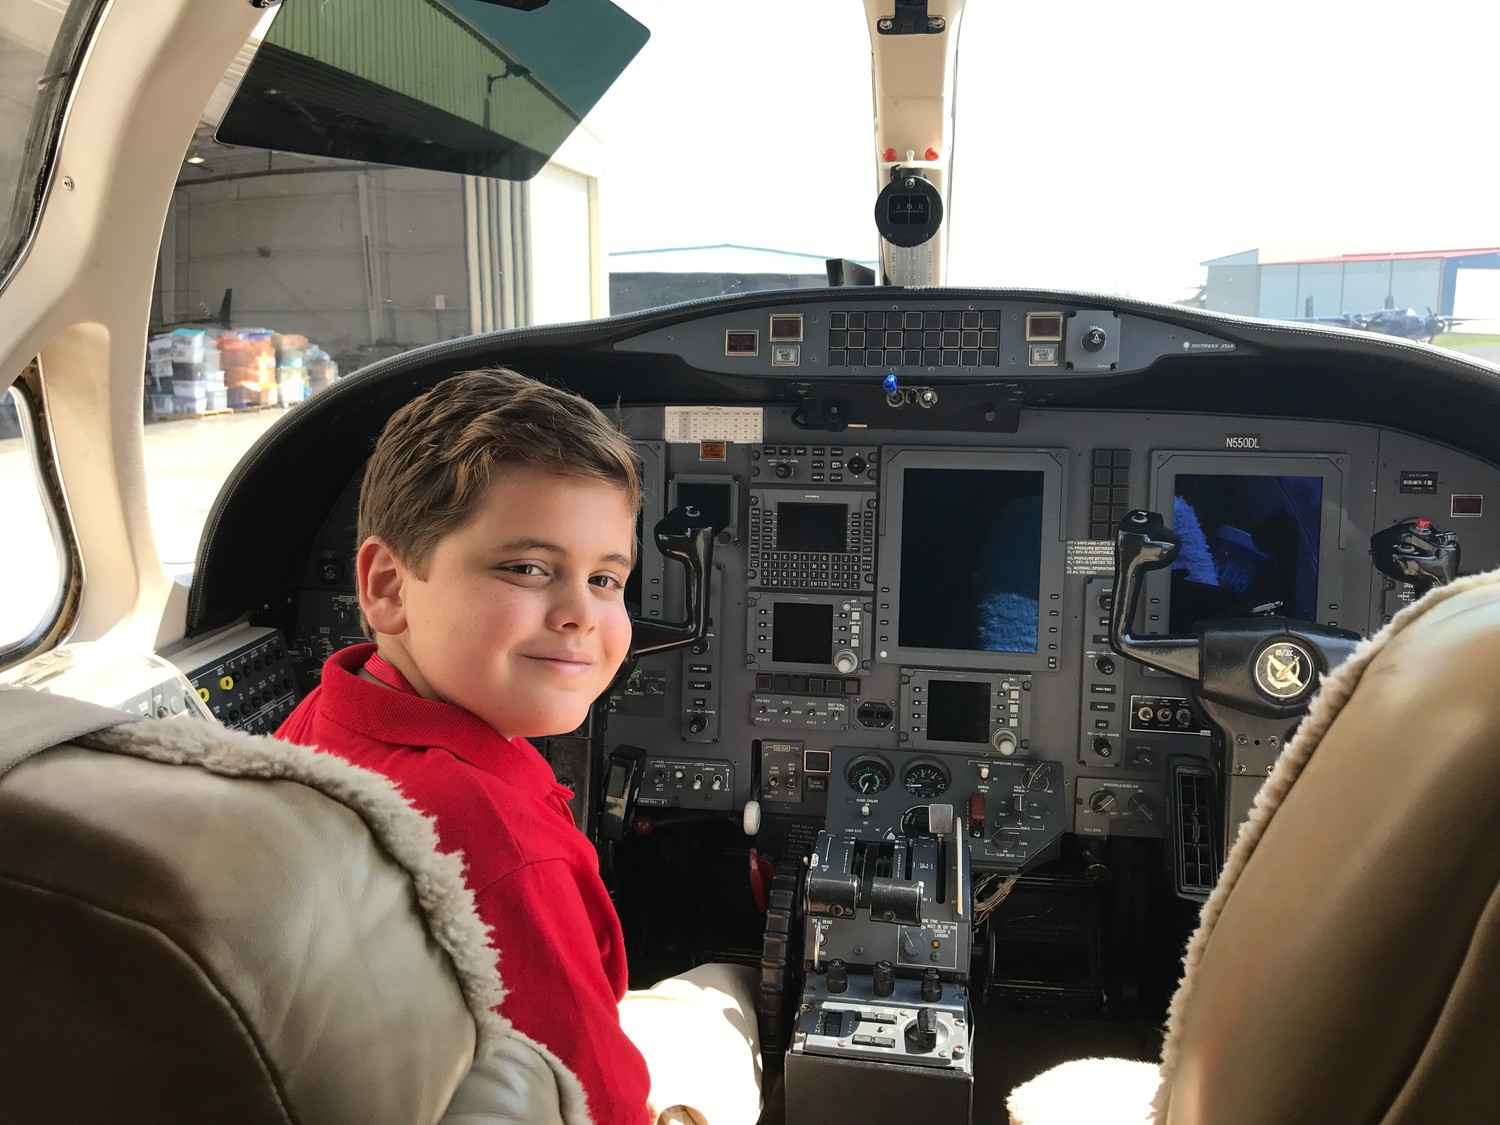 Scholastic News Kid Reporter Truman J. Hamade sits in the cockpit of an airplane loaded with supplies for people affected by Hurricane Harvey in Houston. Truman visited the Georgetown Municipal Airport to learn more about the Austin Disaster Relief Network, a group of volunteers that is collecting food, water, and toiletries for survivors.